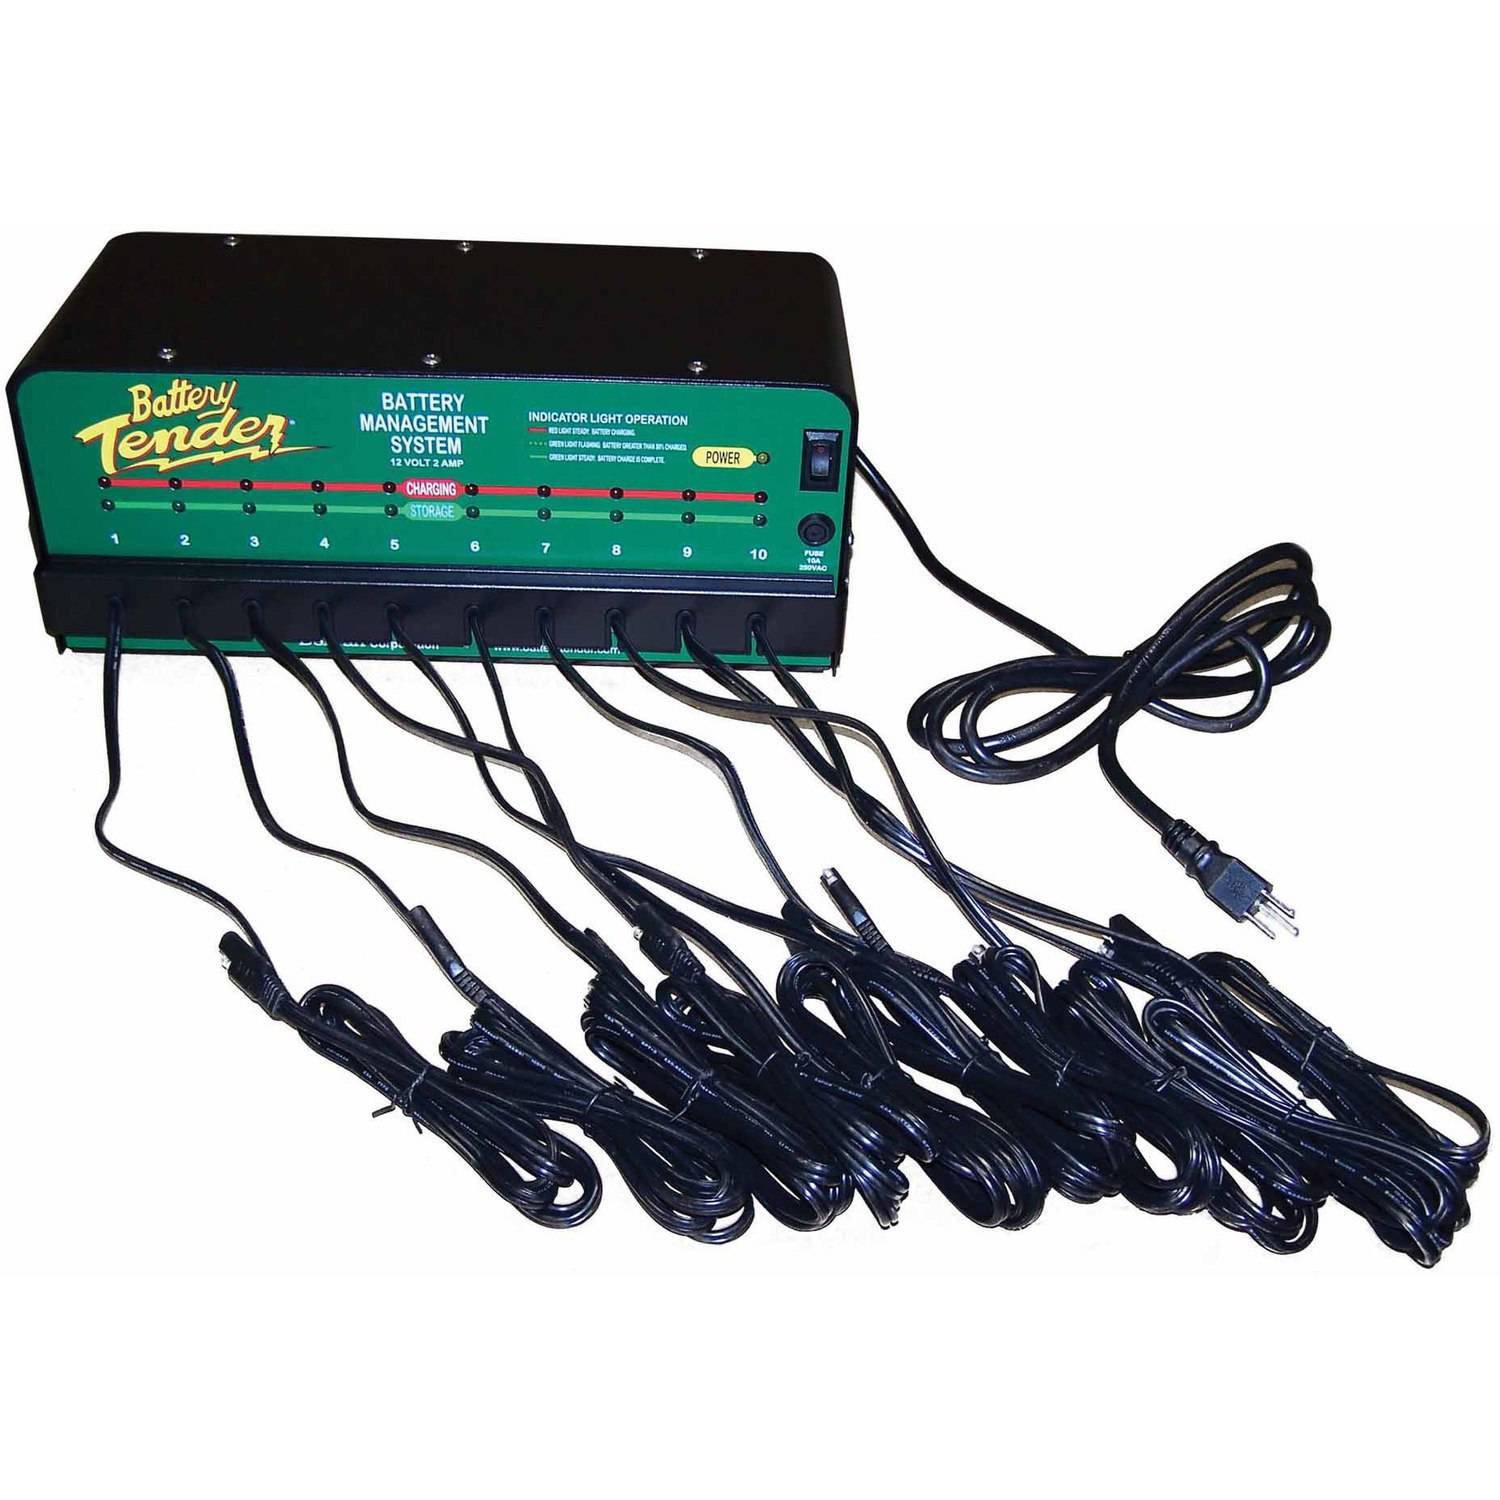 10 Bank Charger 12V @ 2A by Battery Tender